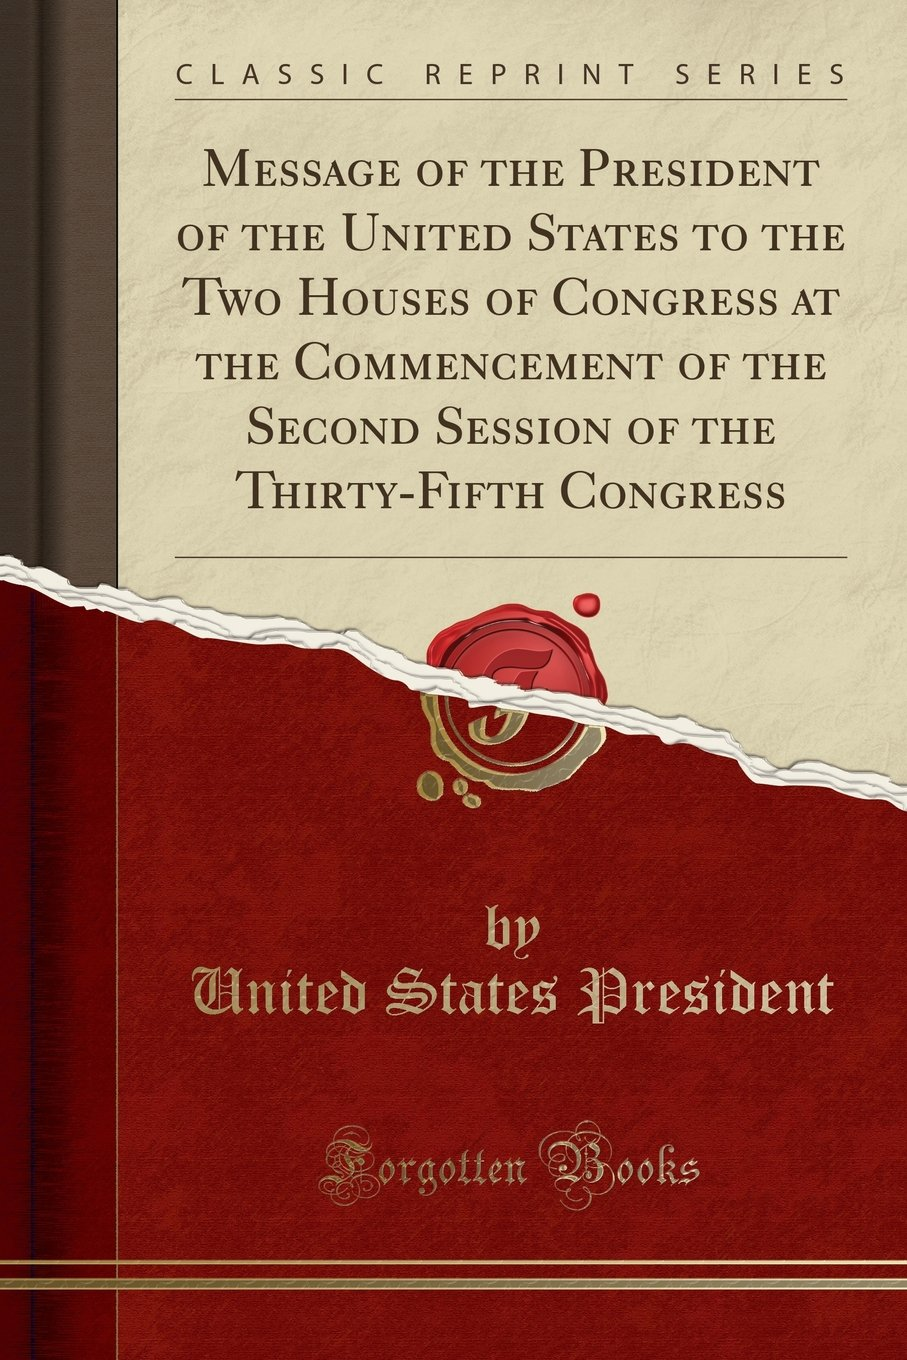 Message of the President of the United States to the Two Houses of Congress at the Commencement of the Second Session of the Thirty-Fifth Congress (Classic Reprint) PDF